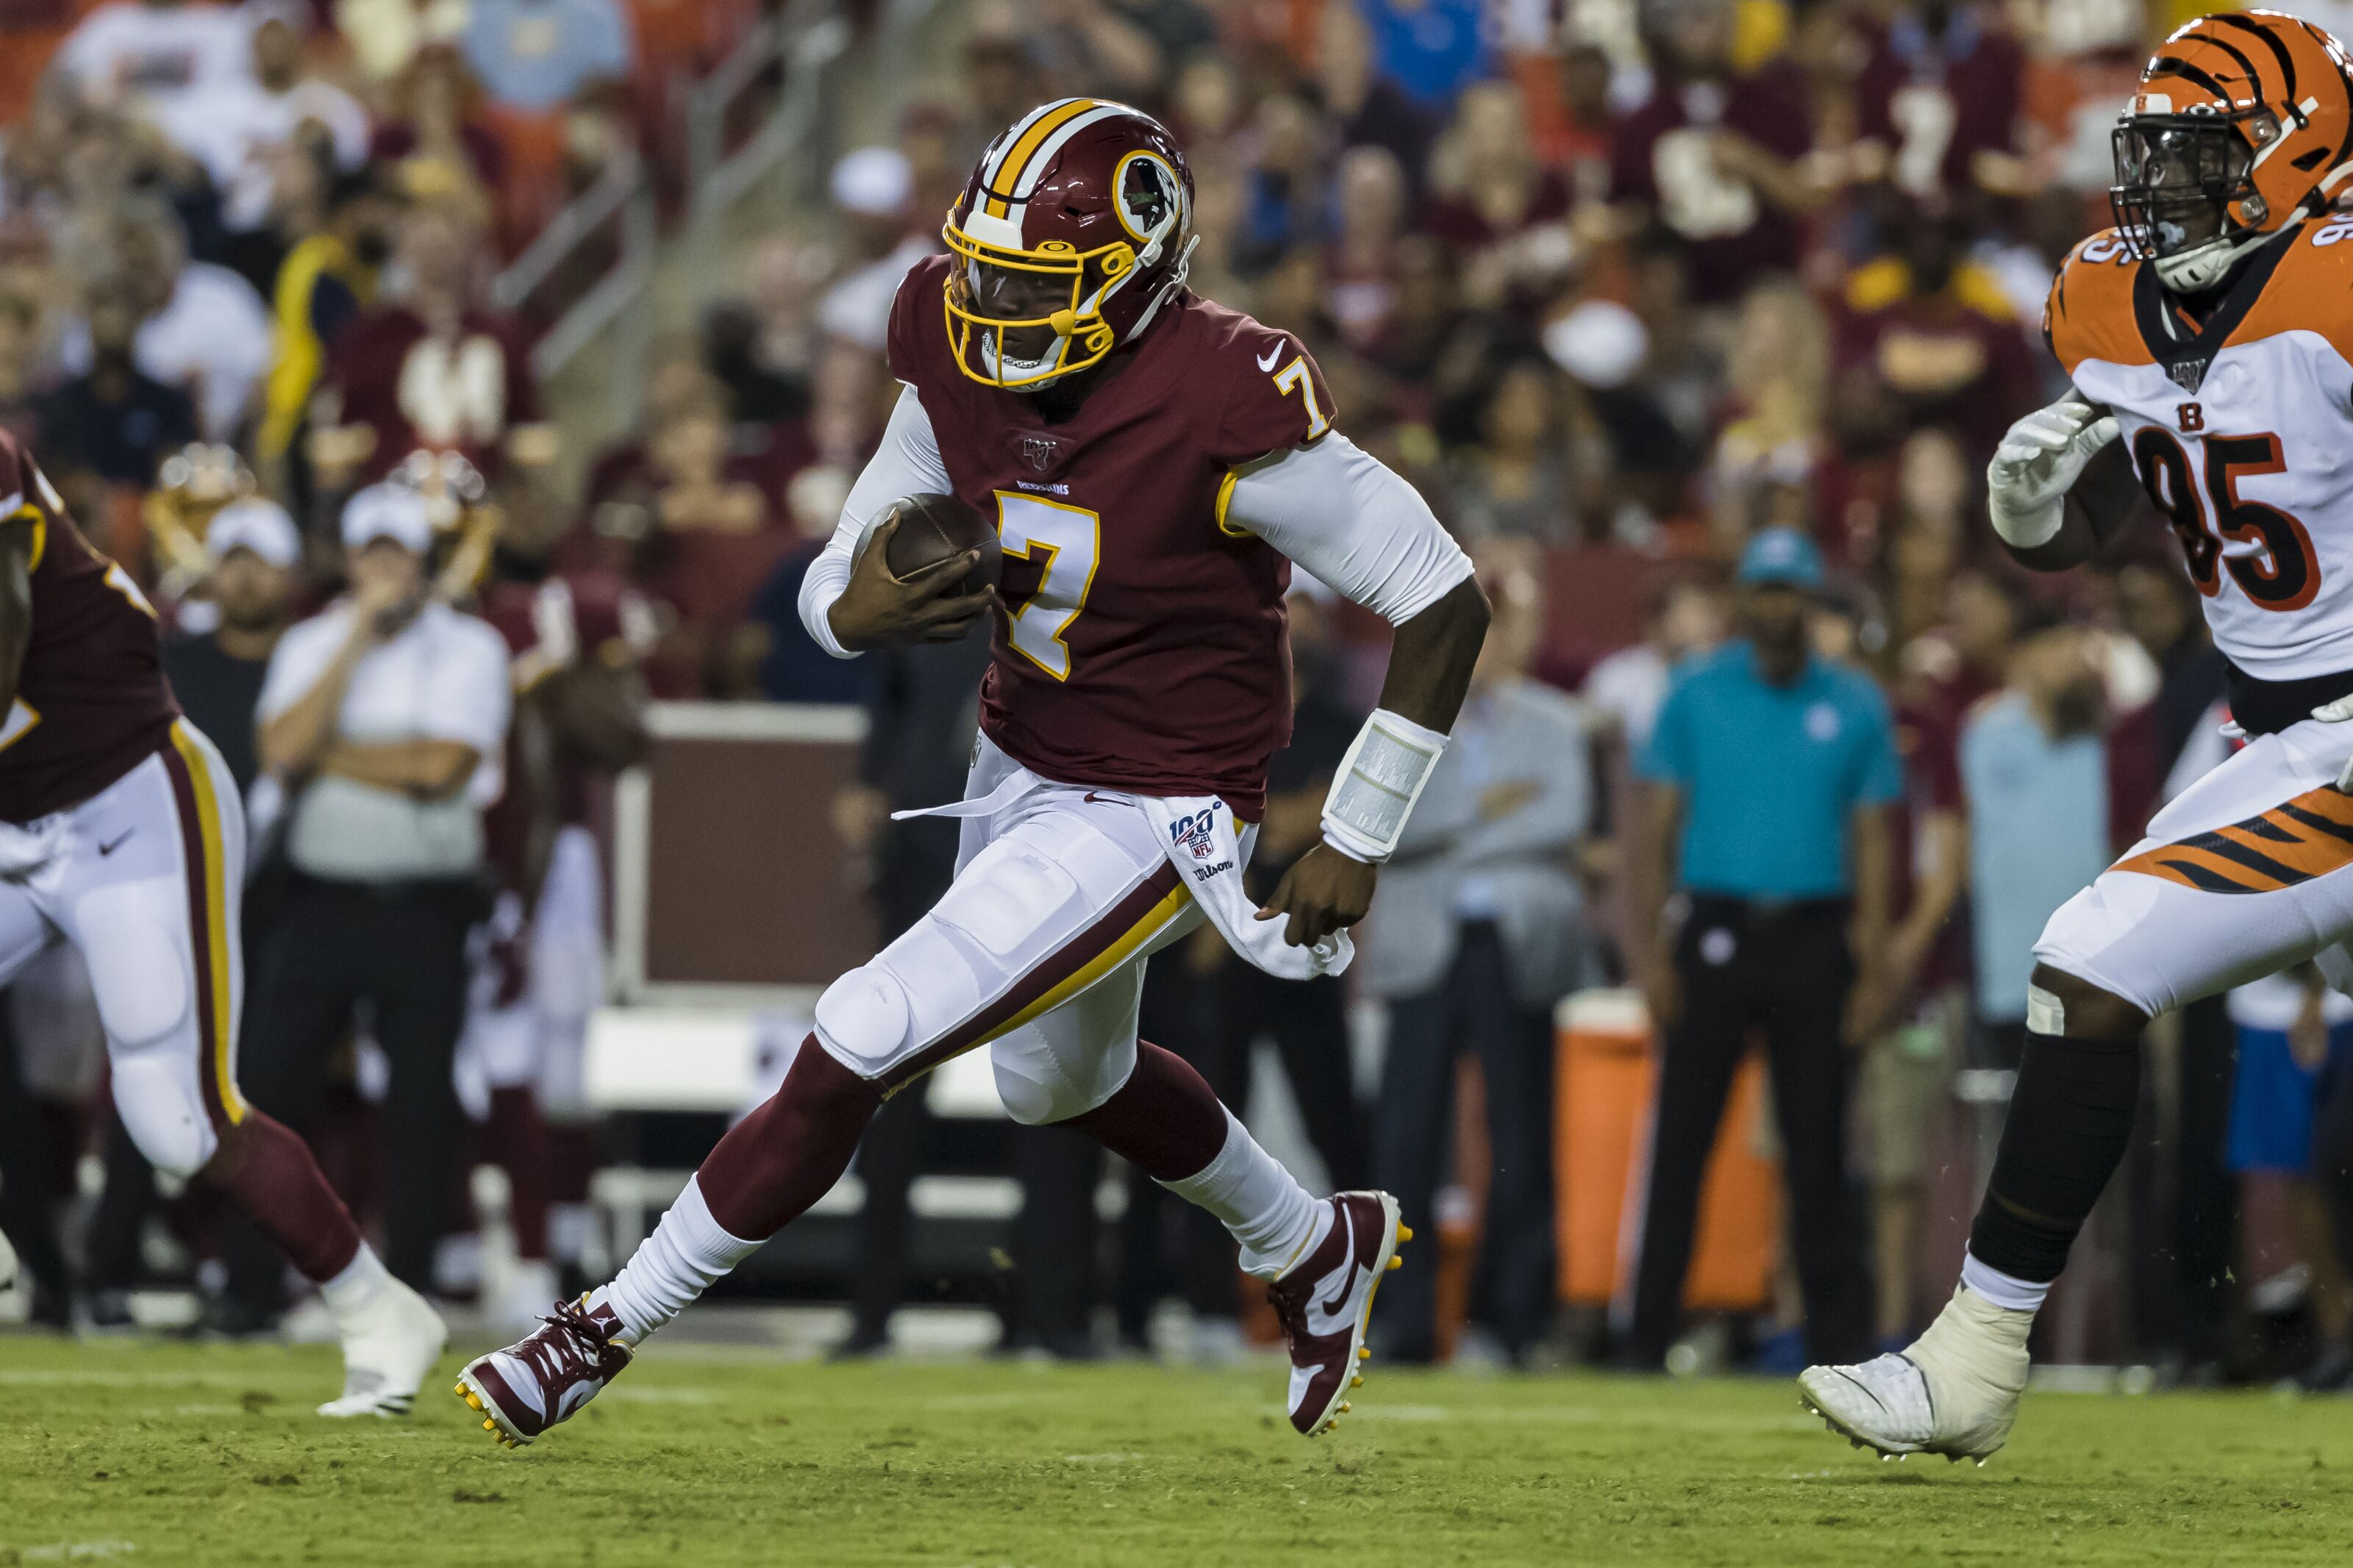 Redskins: Studs and duds from the team's Preseason Week 2 loss to the Bengals